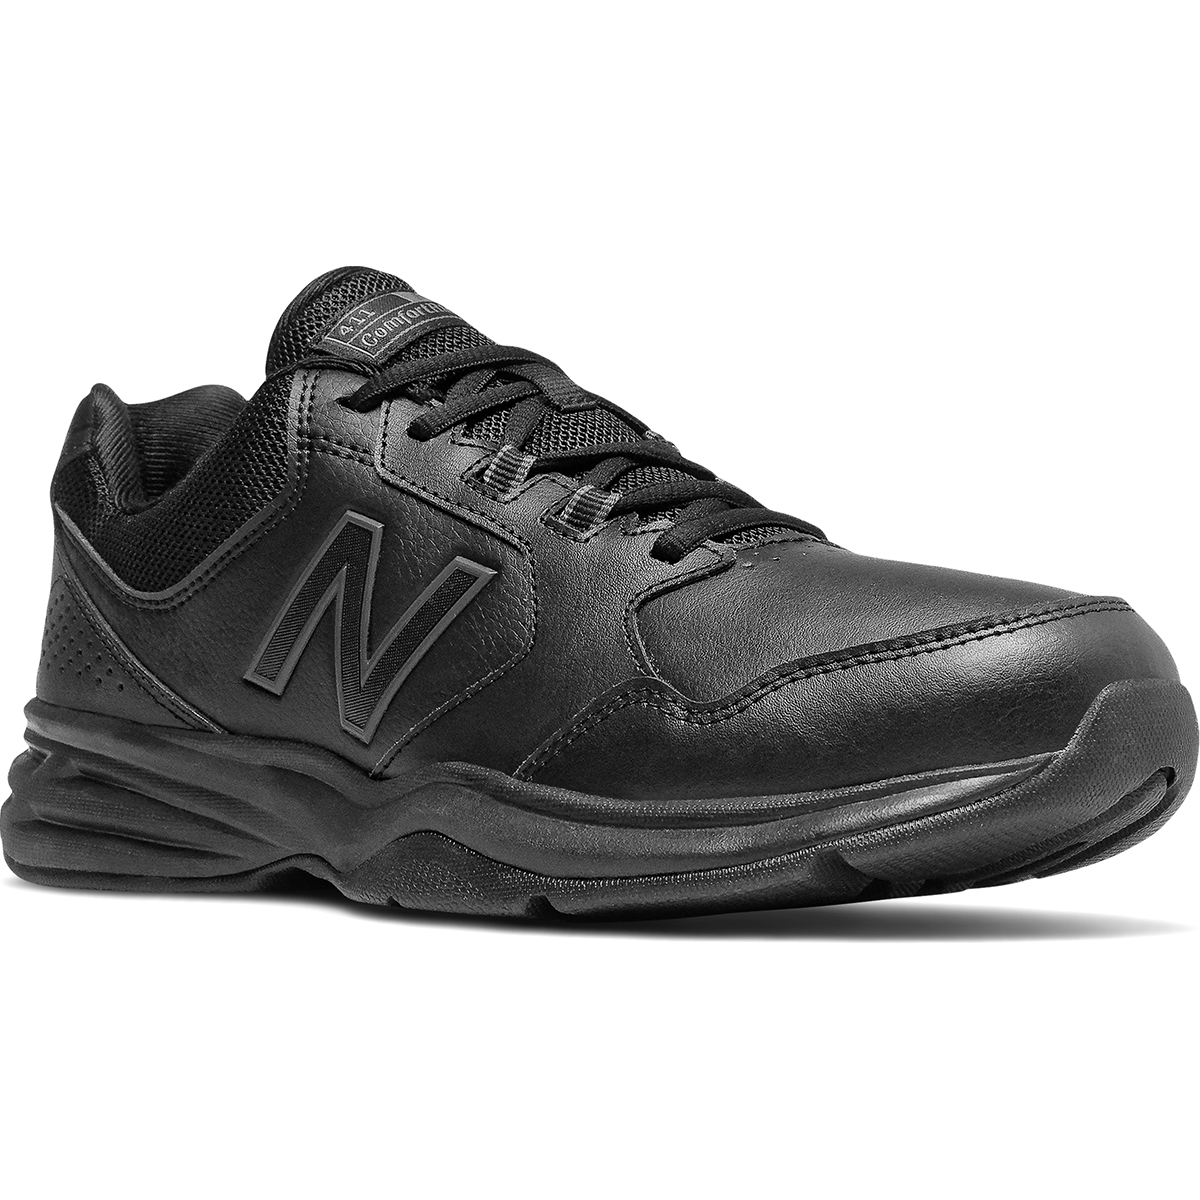 New Balance Men's 411 Walking Shoes - Black, 7.5